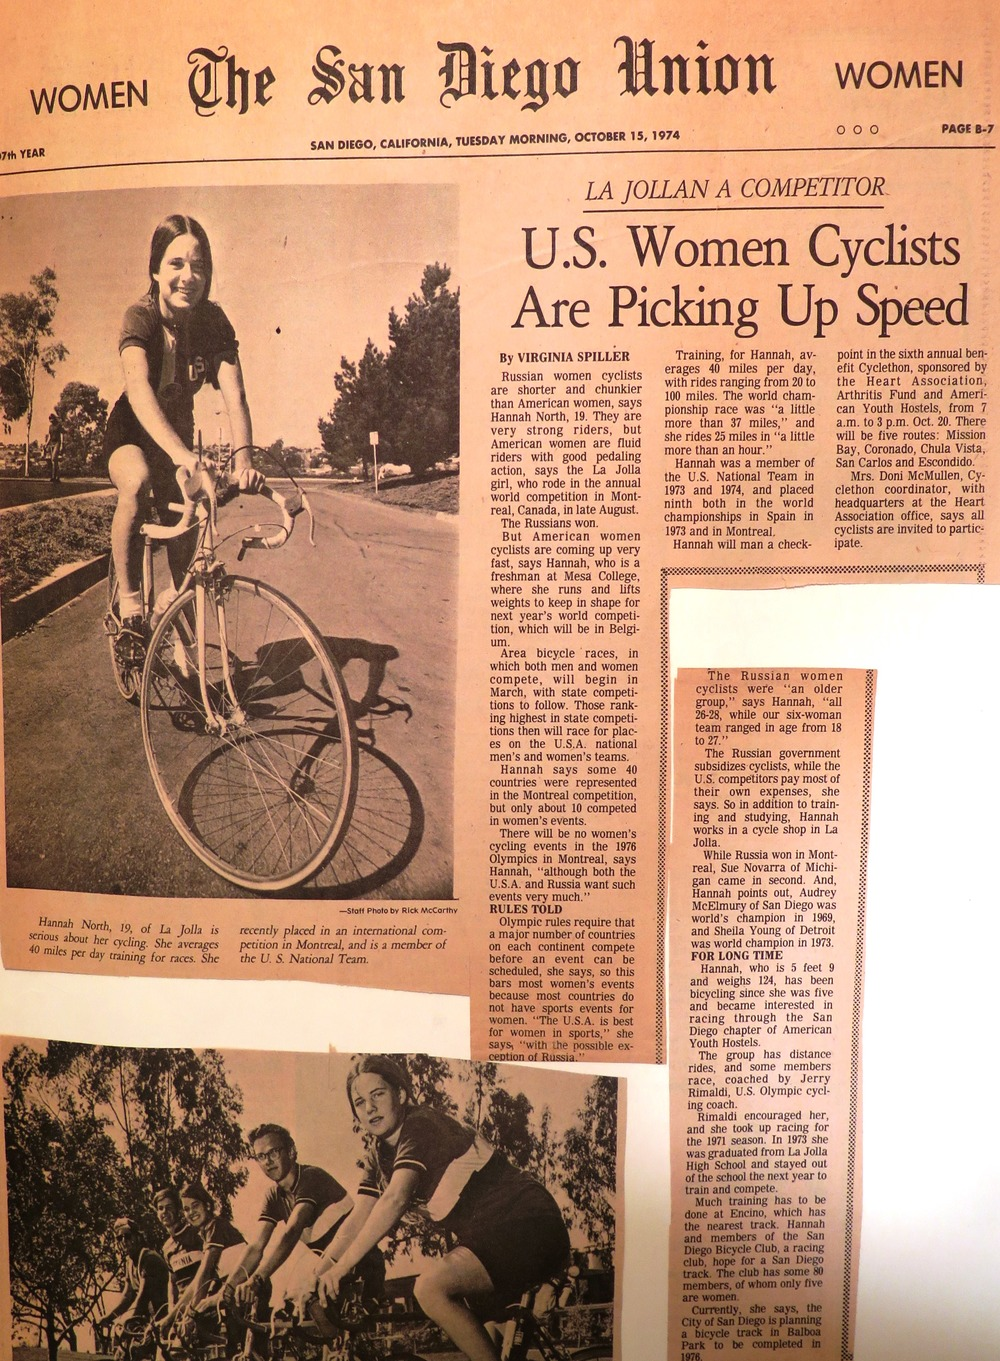 1974 Union Tribune article about Hannah North